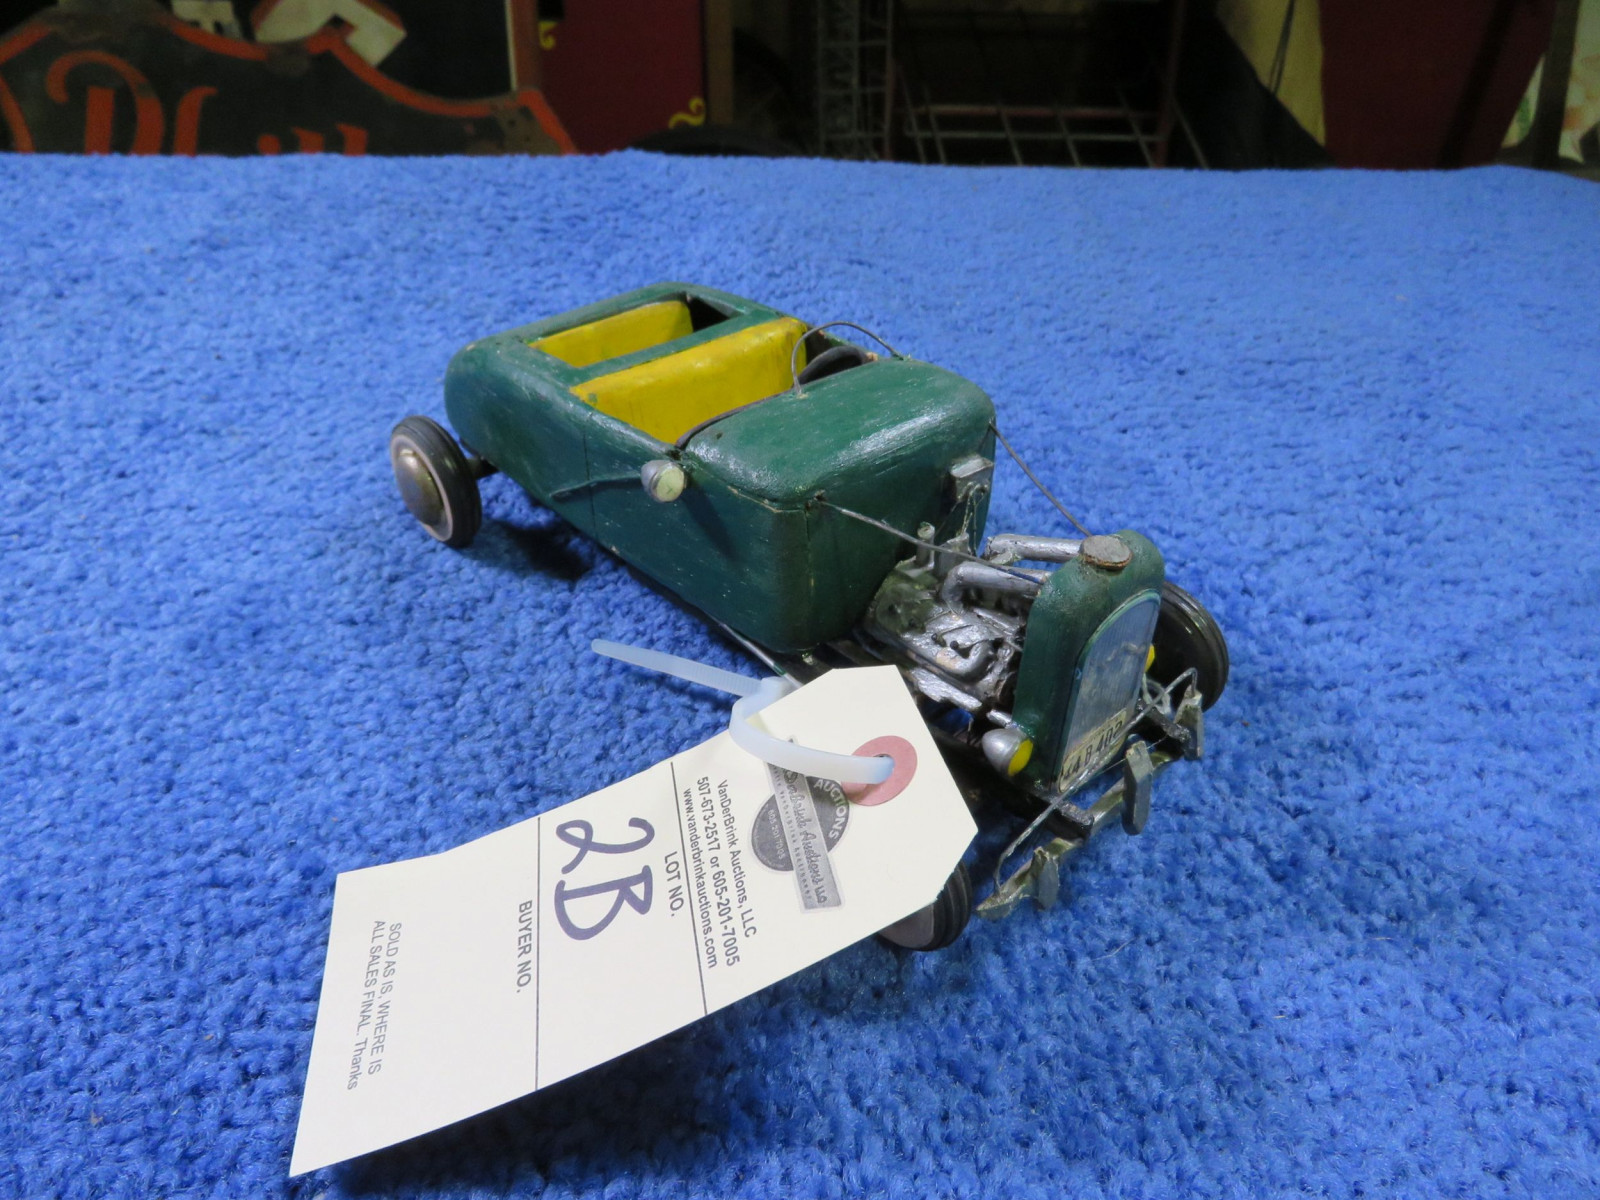 Vintage Hommade Wood Hot Rod Toy - Image 1